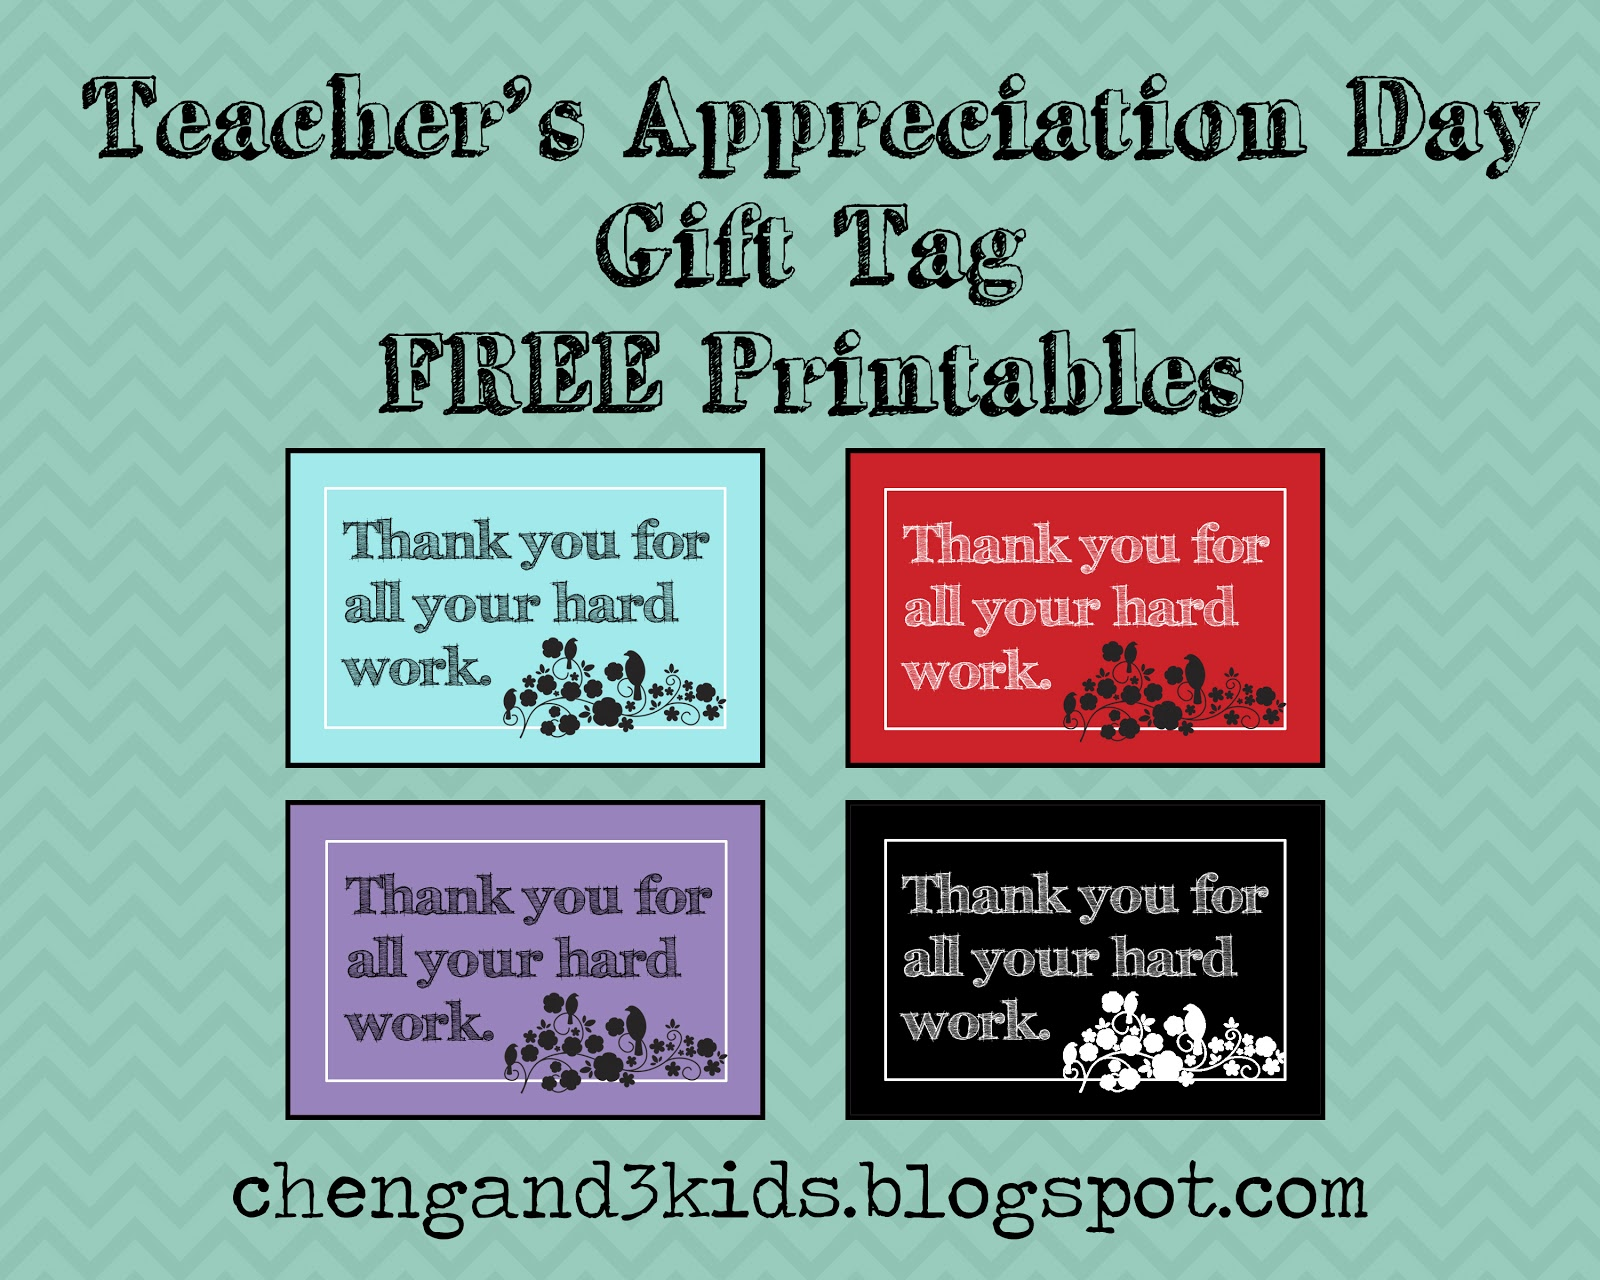 cheng and kids teacher s appreciation day gift tag printable teacher s appreciation day printable gift tags available in blue red purple and